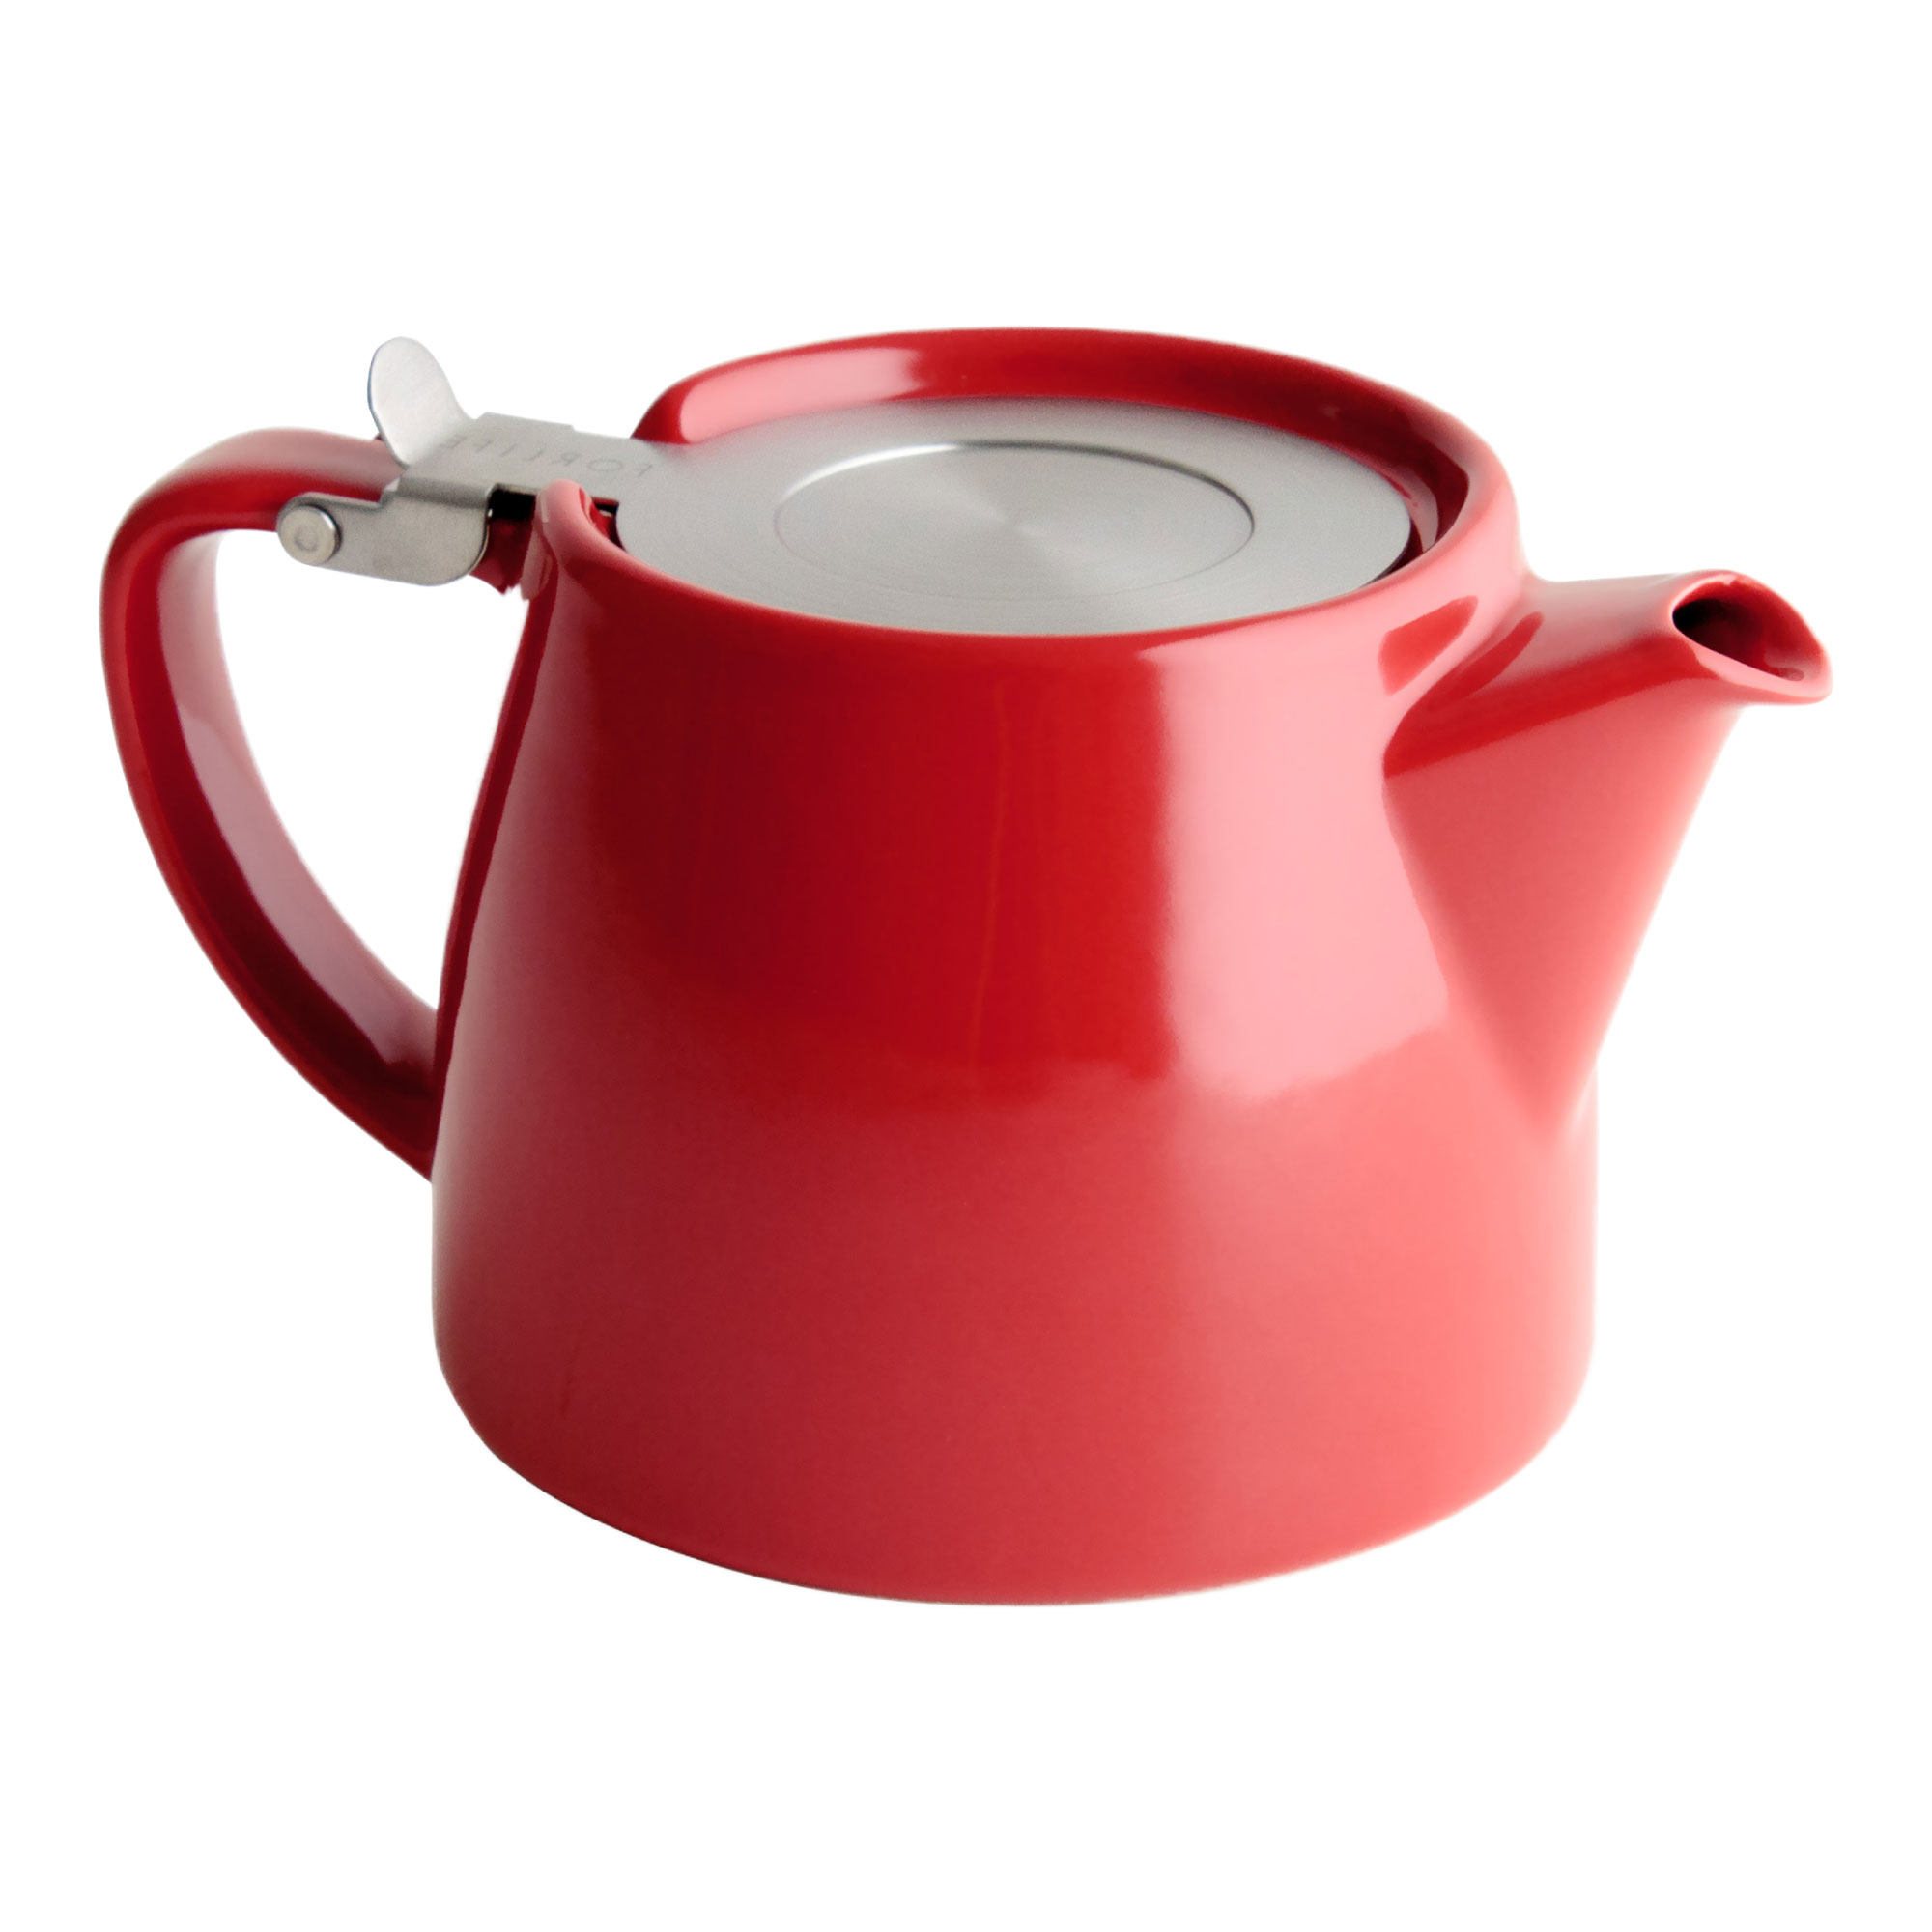 Red Tea Pot for Infusing Loose Leaf Tea